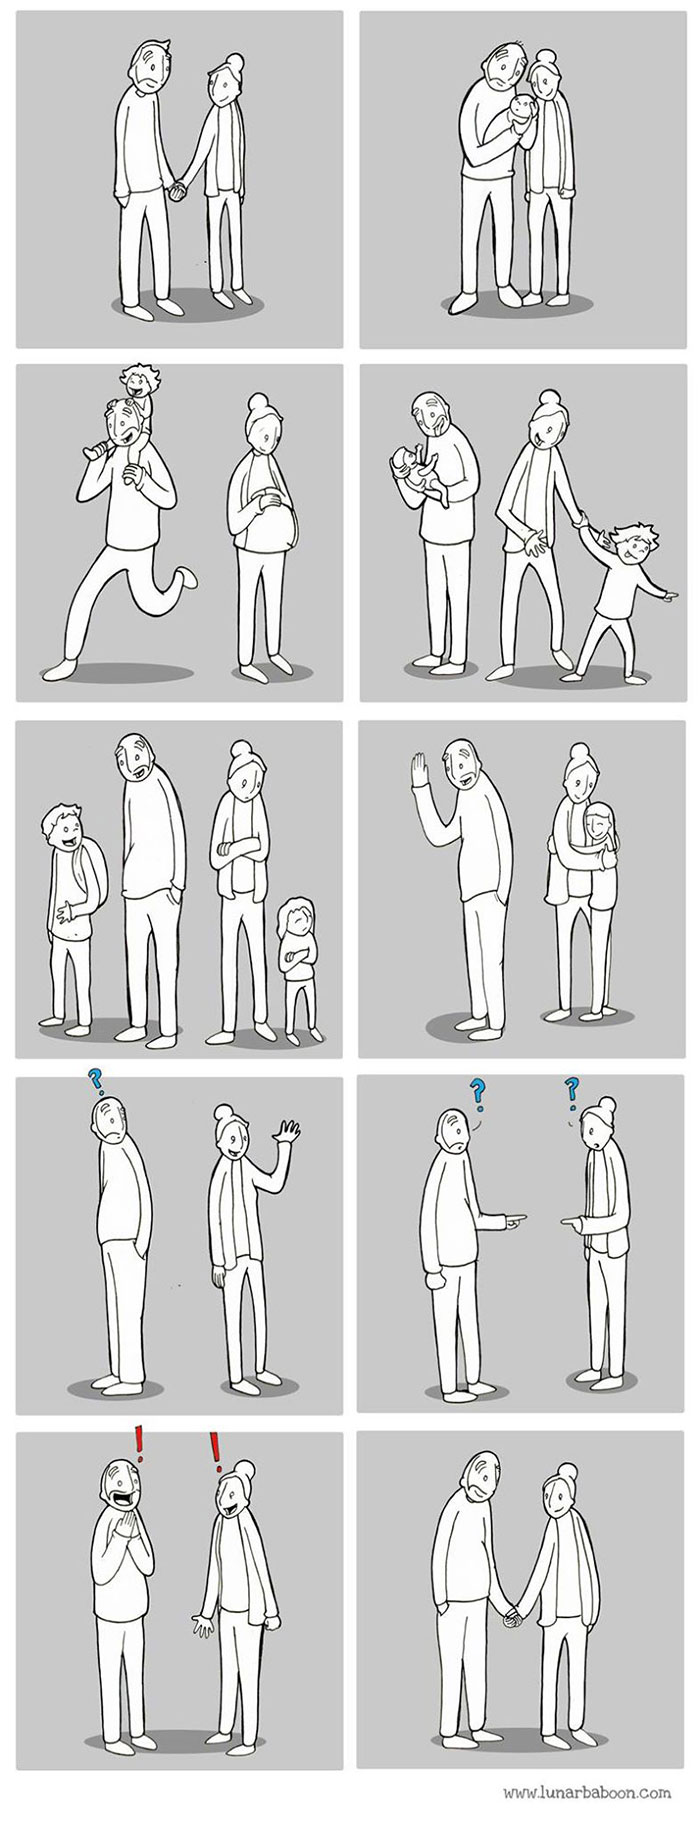 lunarbaboon-11